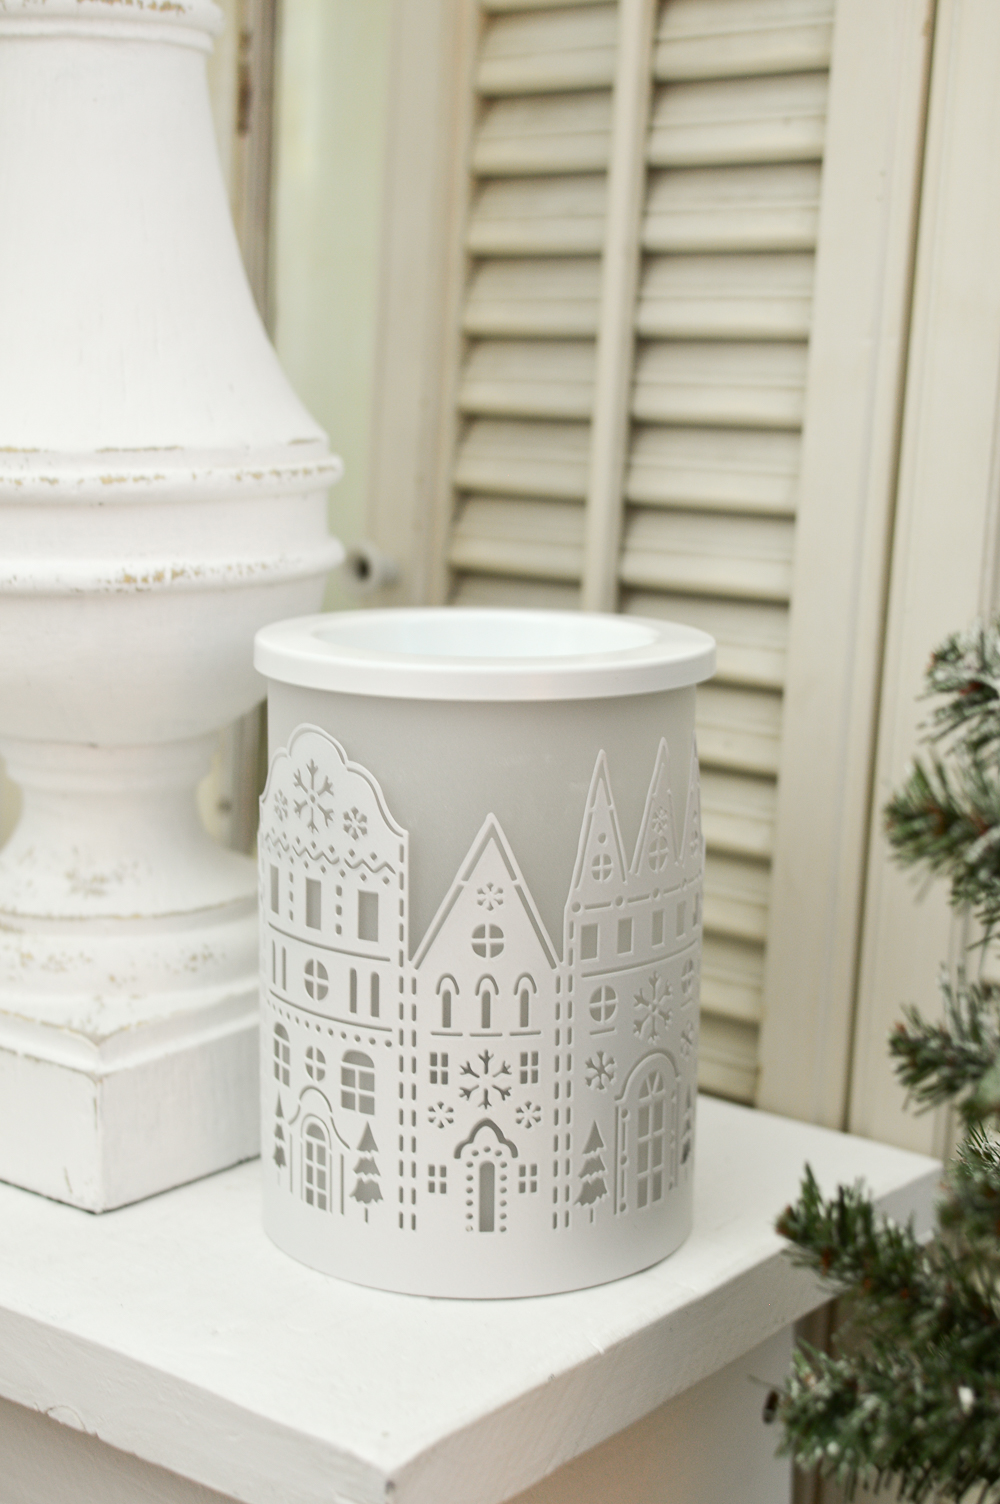 Affordable Christmas Gift Ideas That Are So Cute - Fox Hollow Cottage